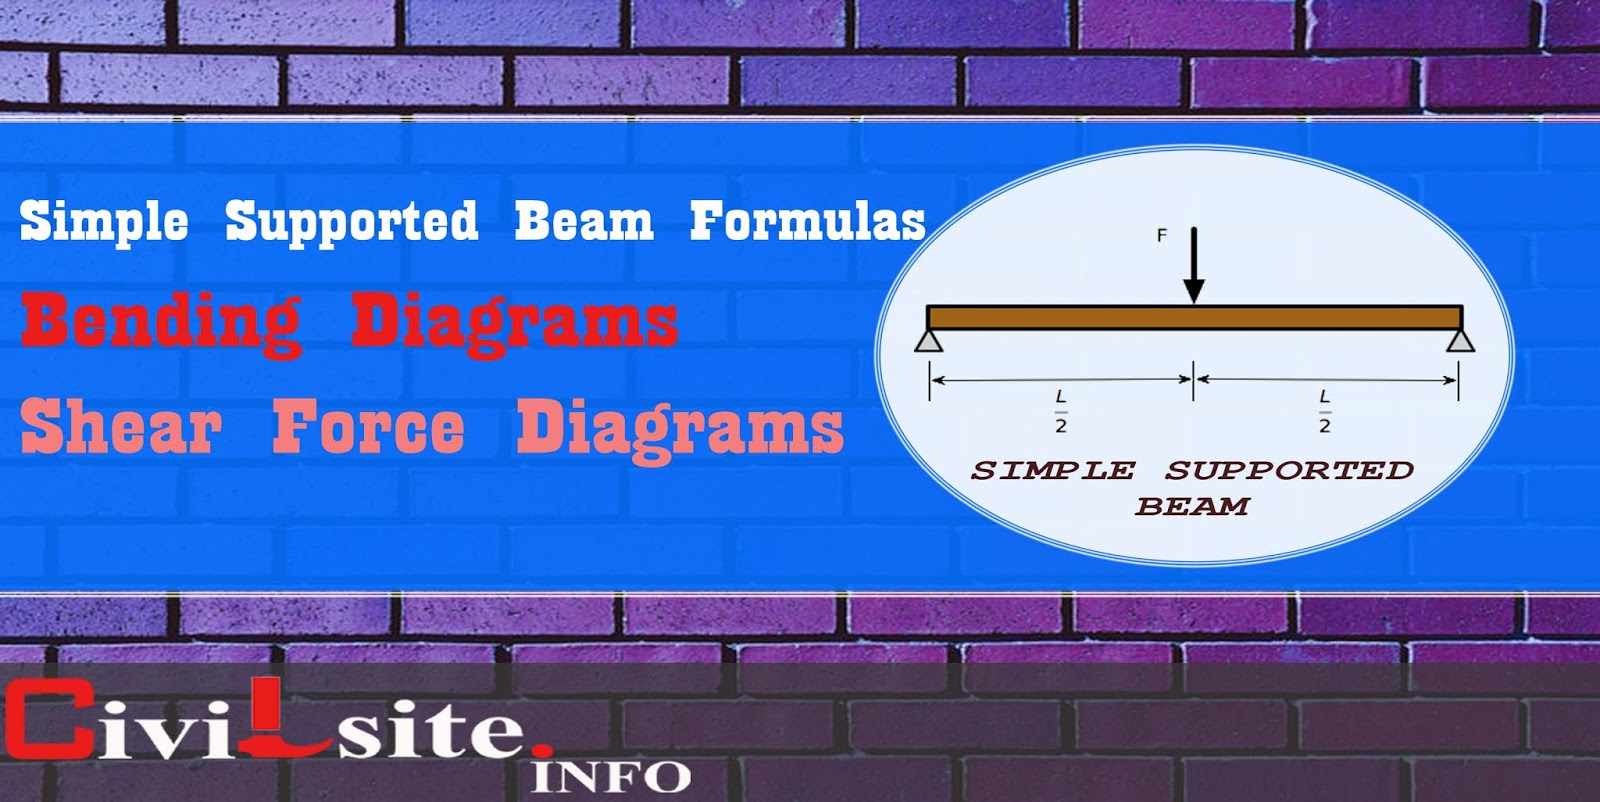 Simple Supported Beam Formulas